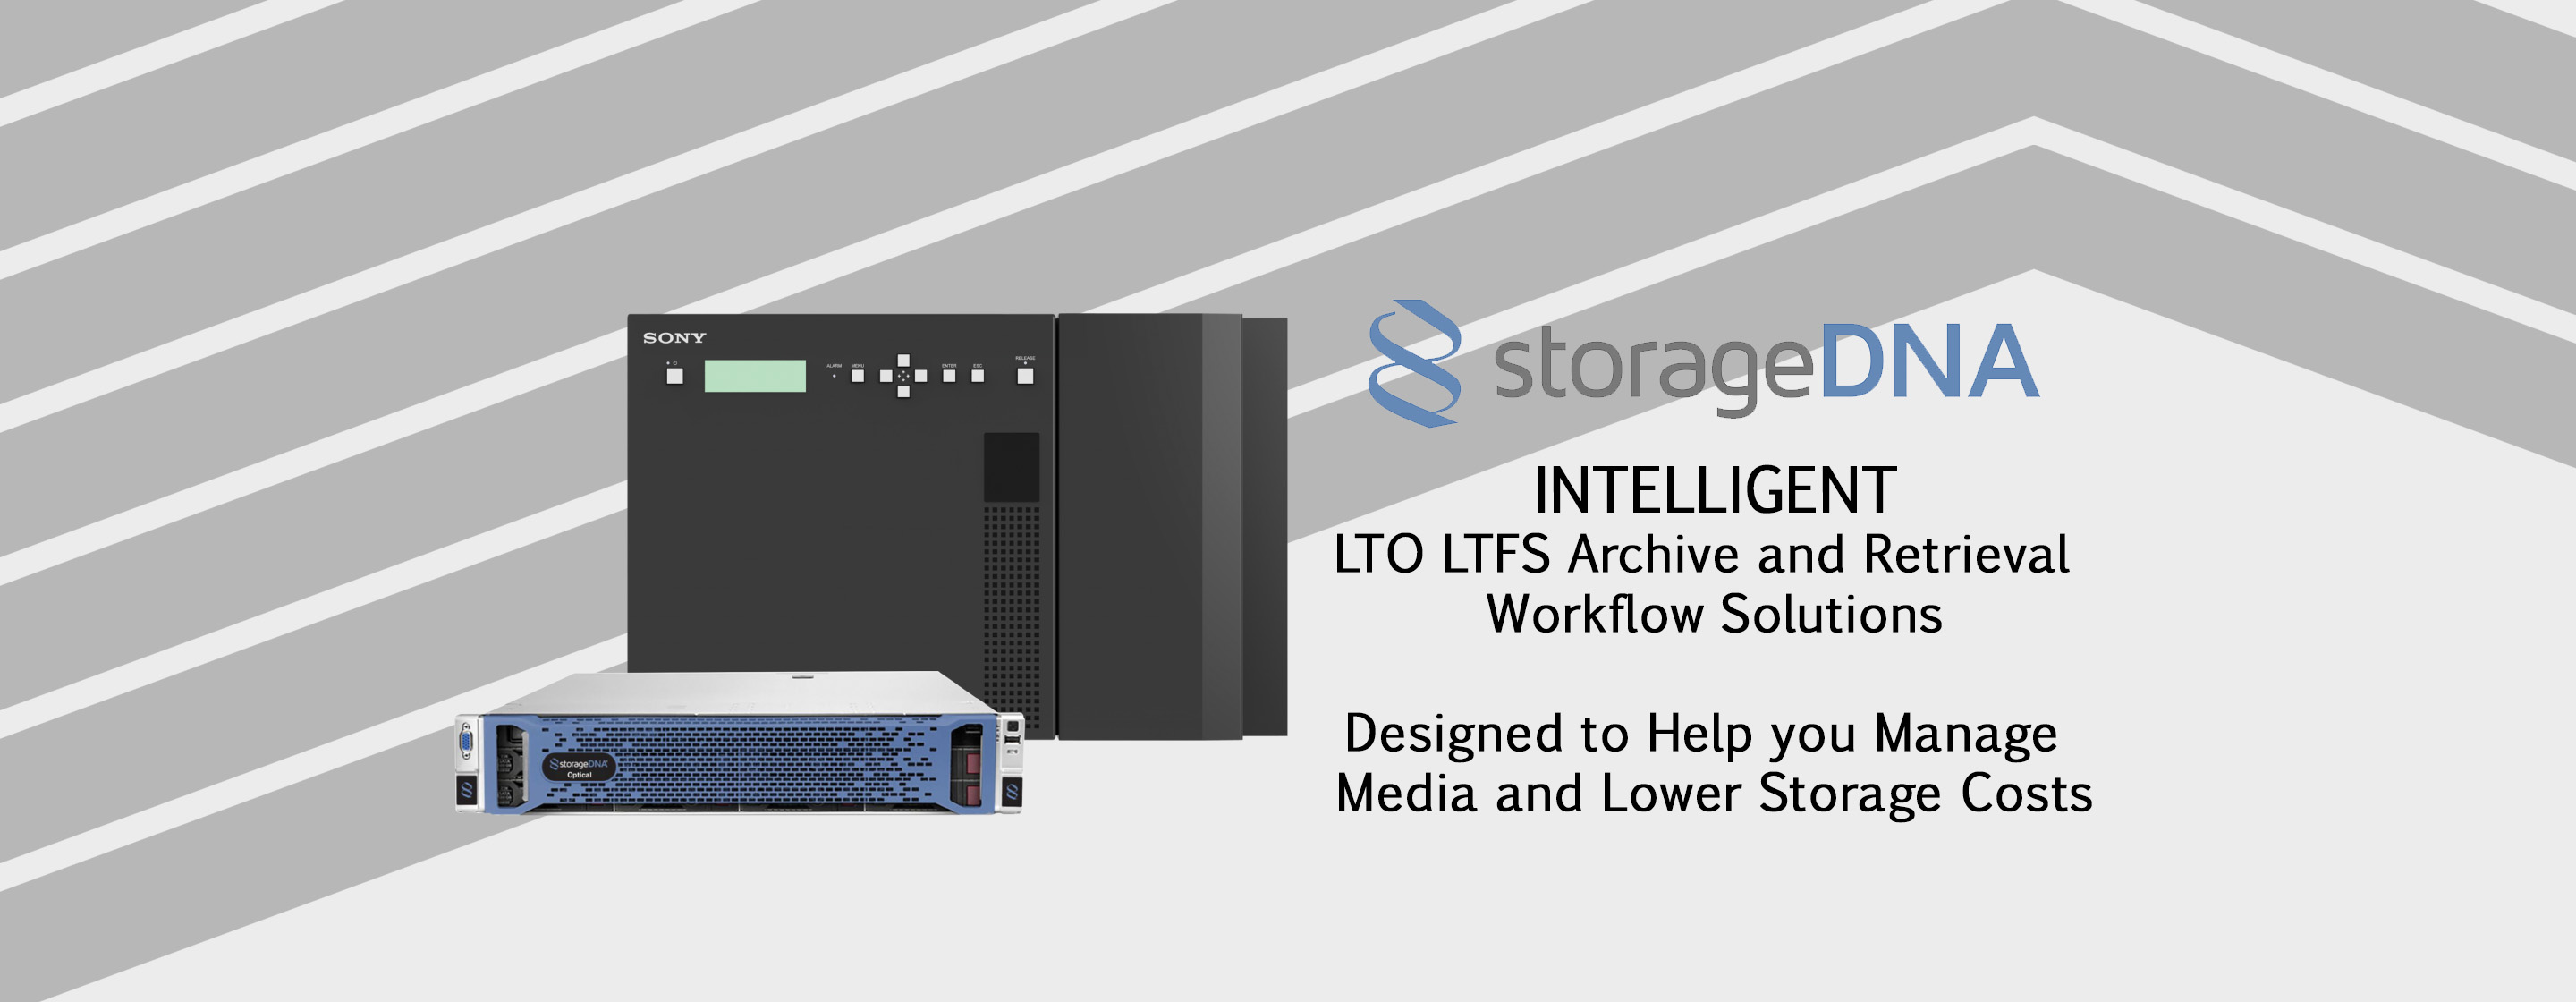 StorageDNA LTO Archiving Solutions